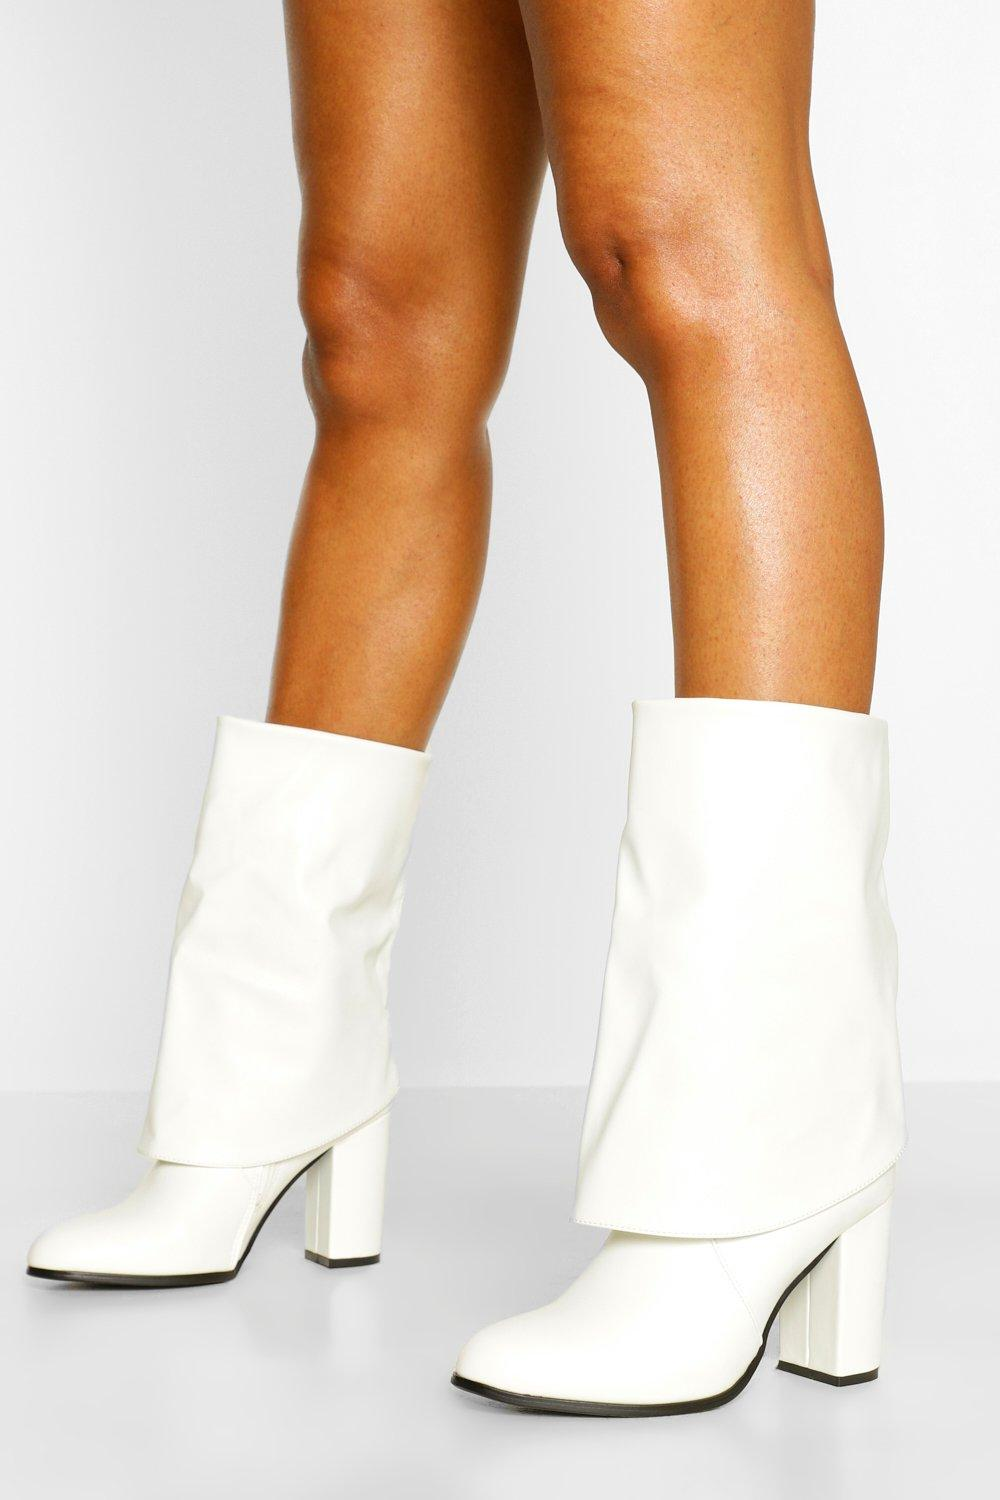 Vintage Boots, Retro Boots Womens Fold Over Block Heel Knee Boots - White - 10 $30.00 AT vintagedancer.com